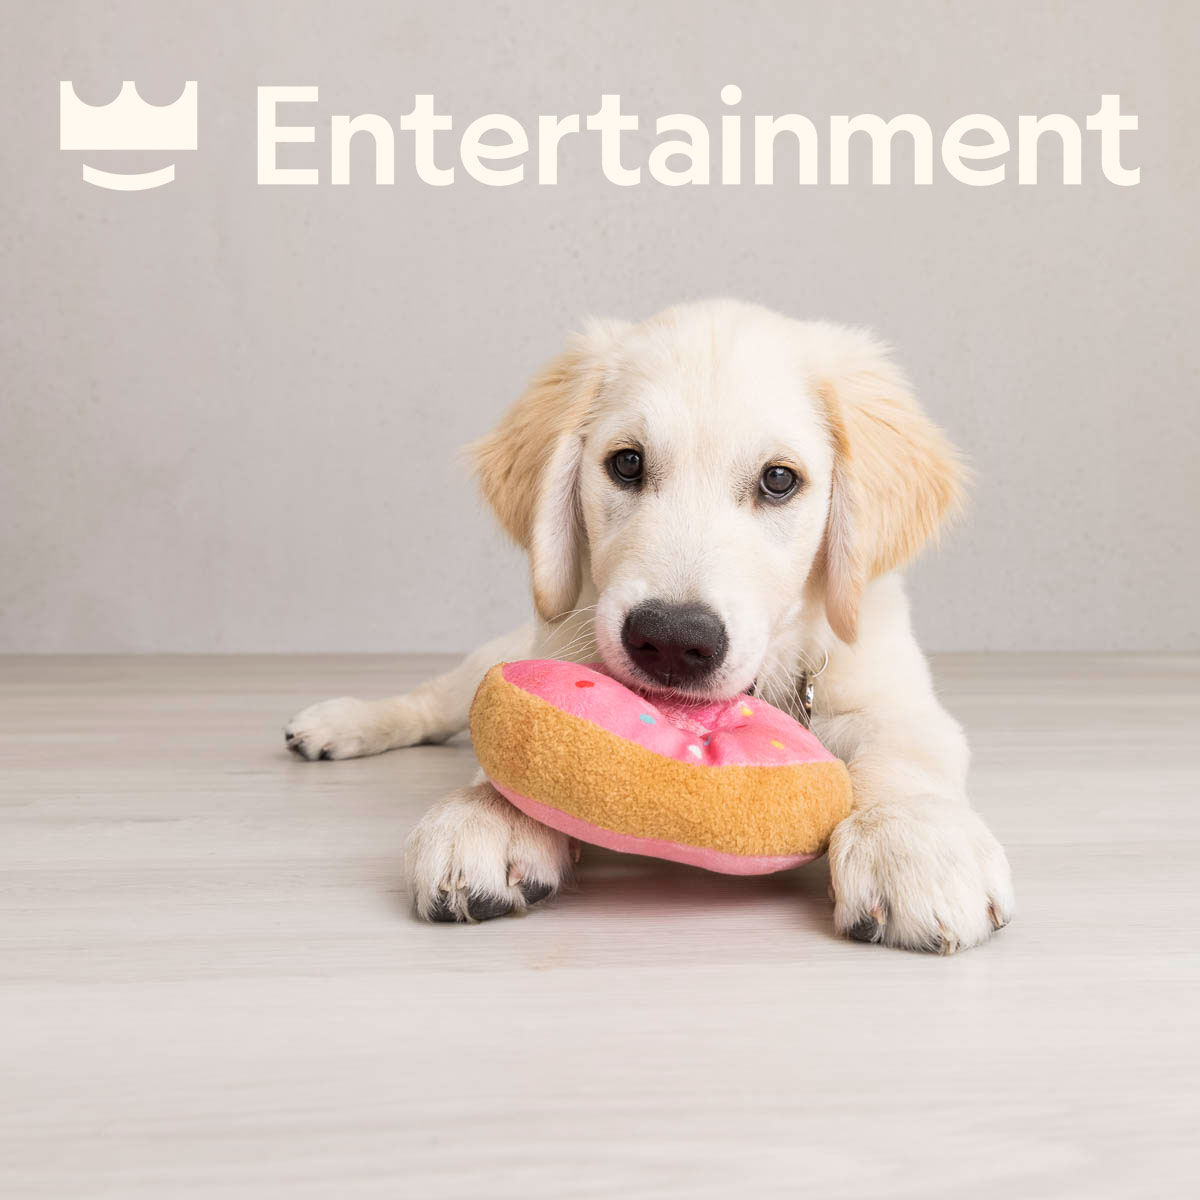 puppy with a toy doughnut